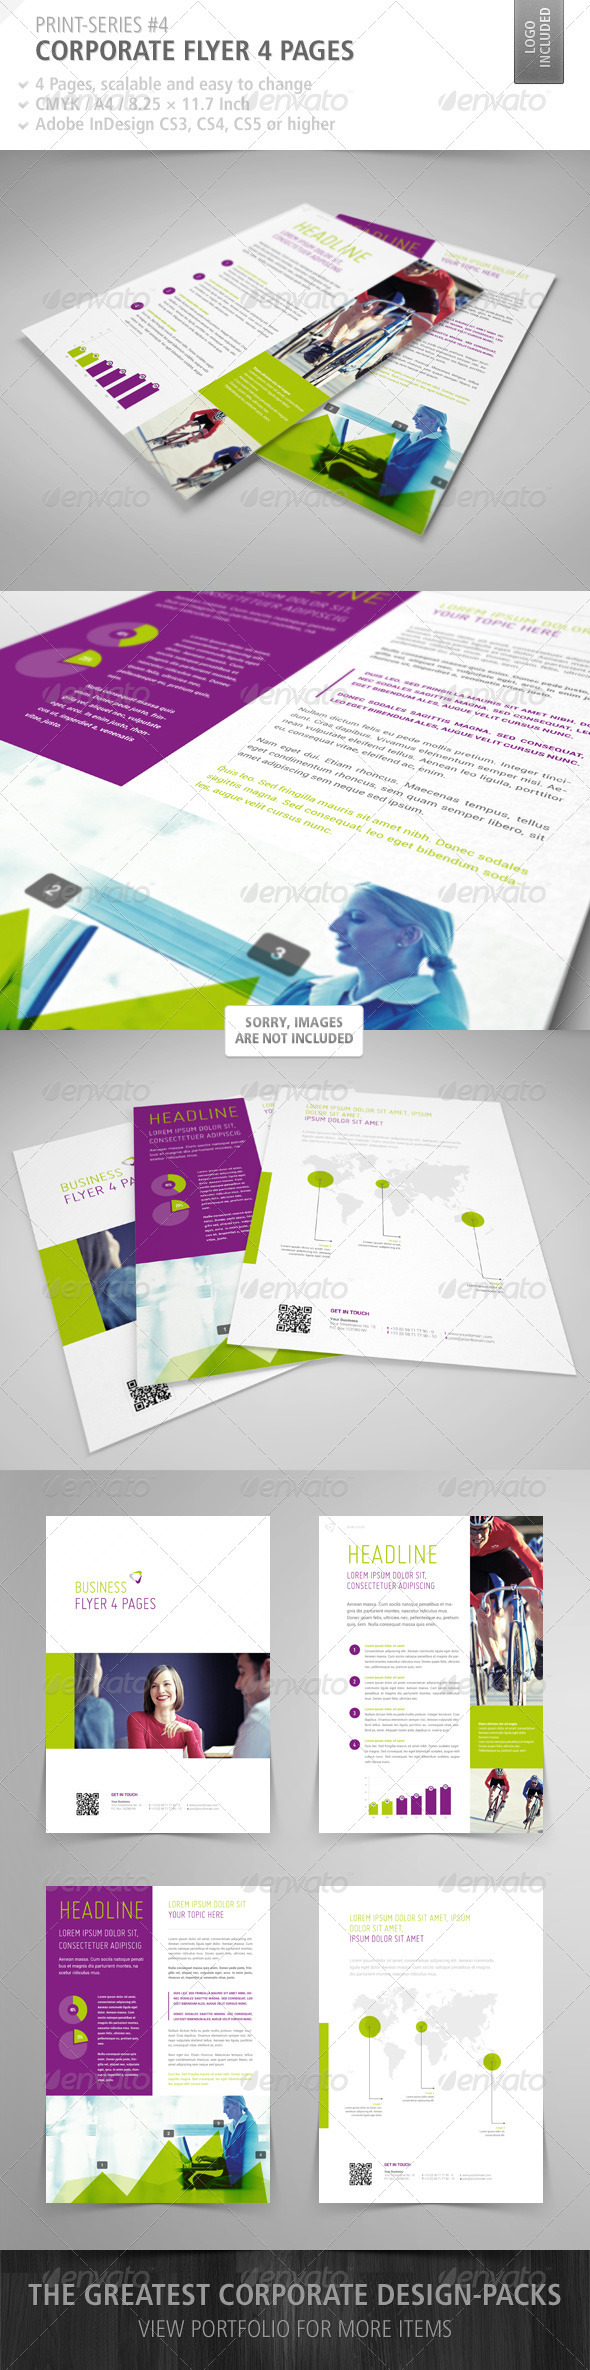 GraphicRiver Corporate Flyer 4 Pages Print-Series #4 3823555